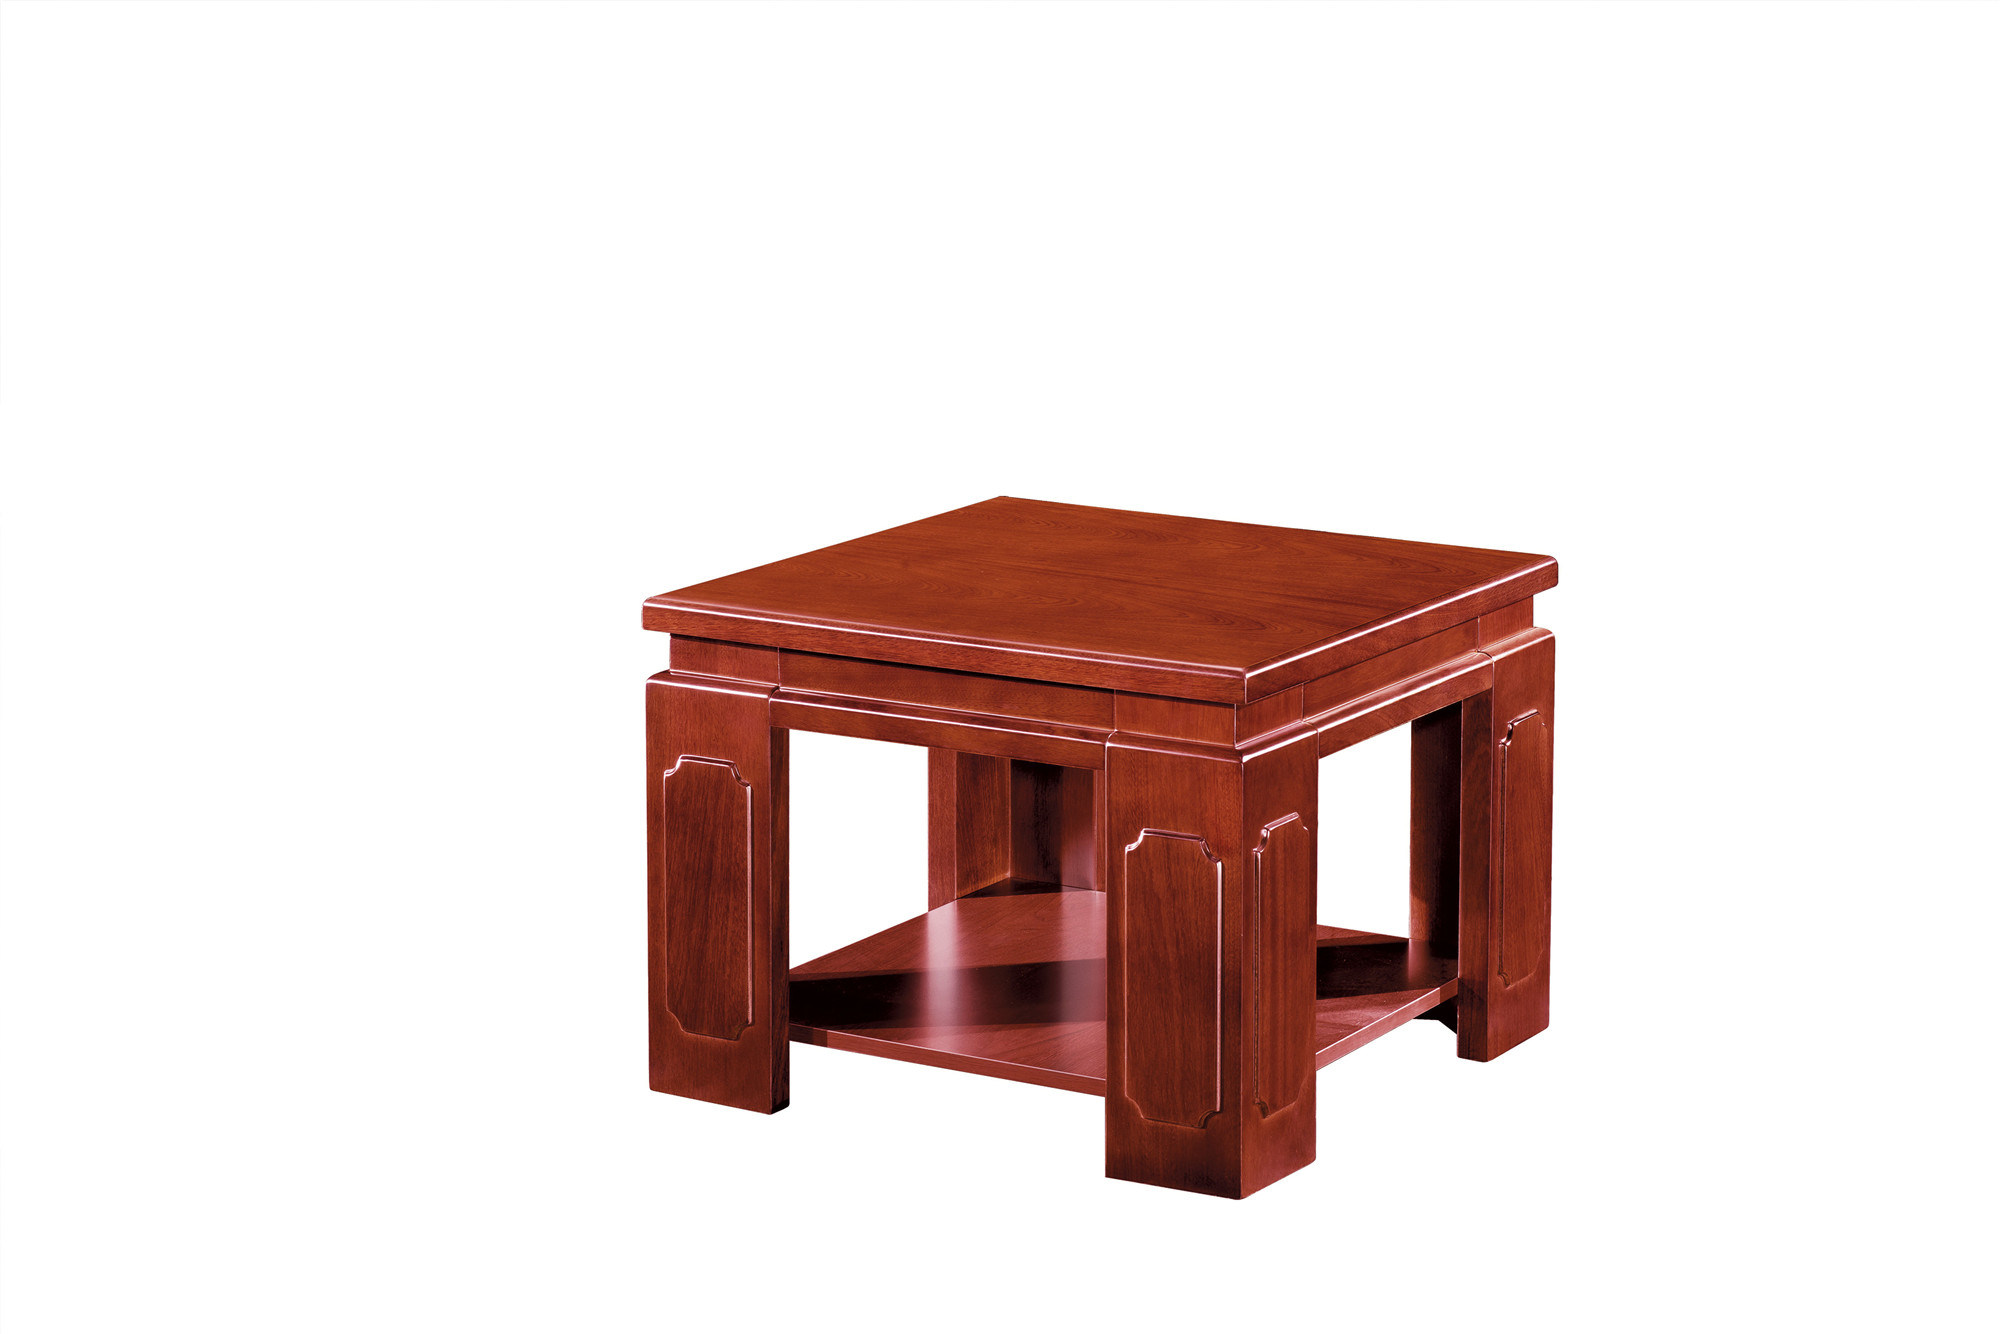 hot item luxury high end wooden veneer square small coffee table office furniture d 30506